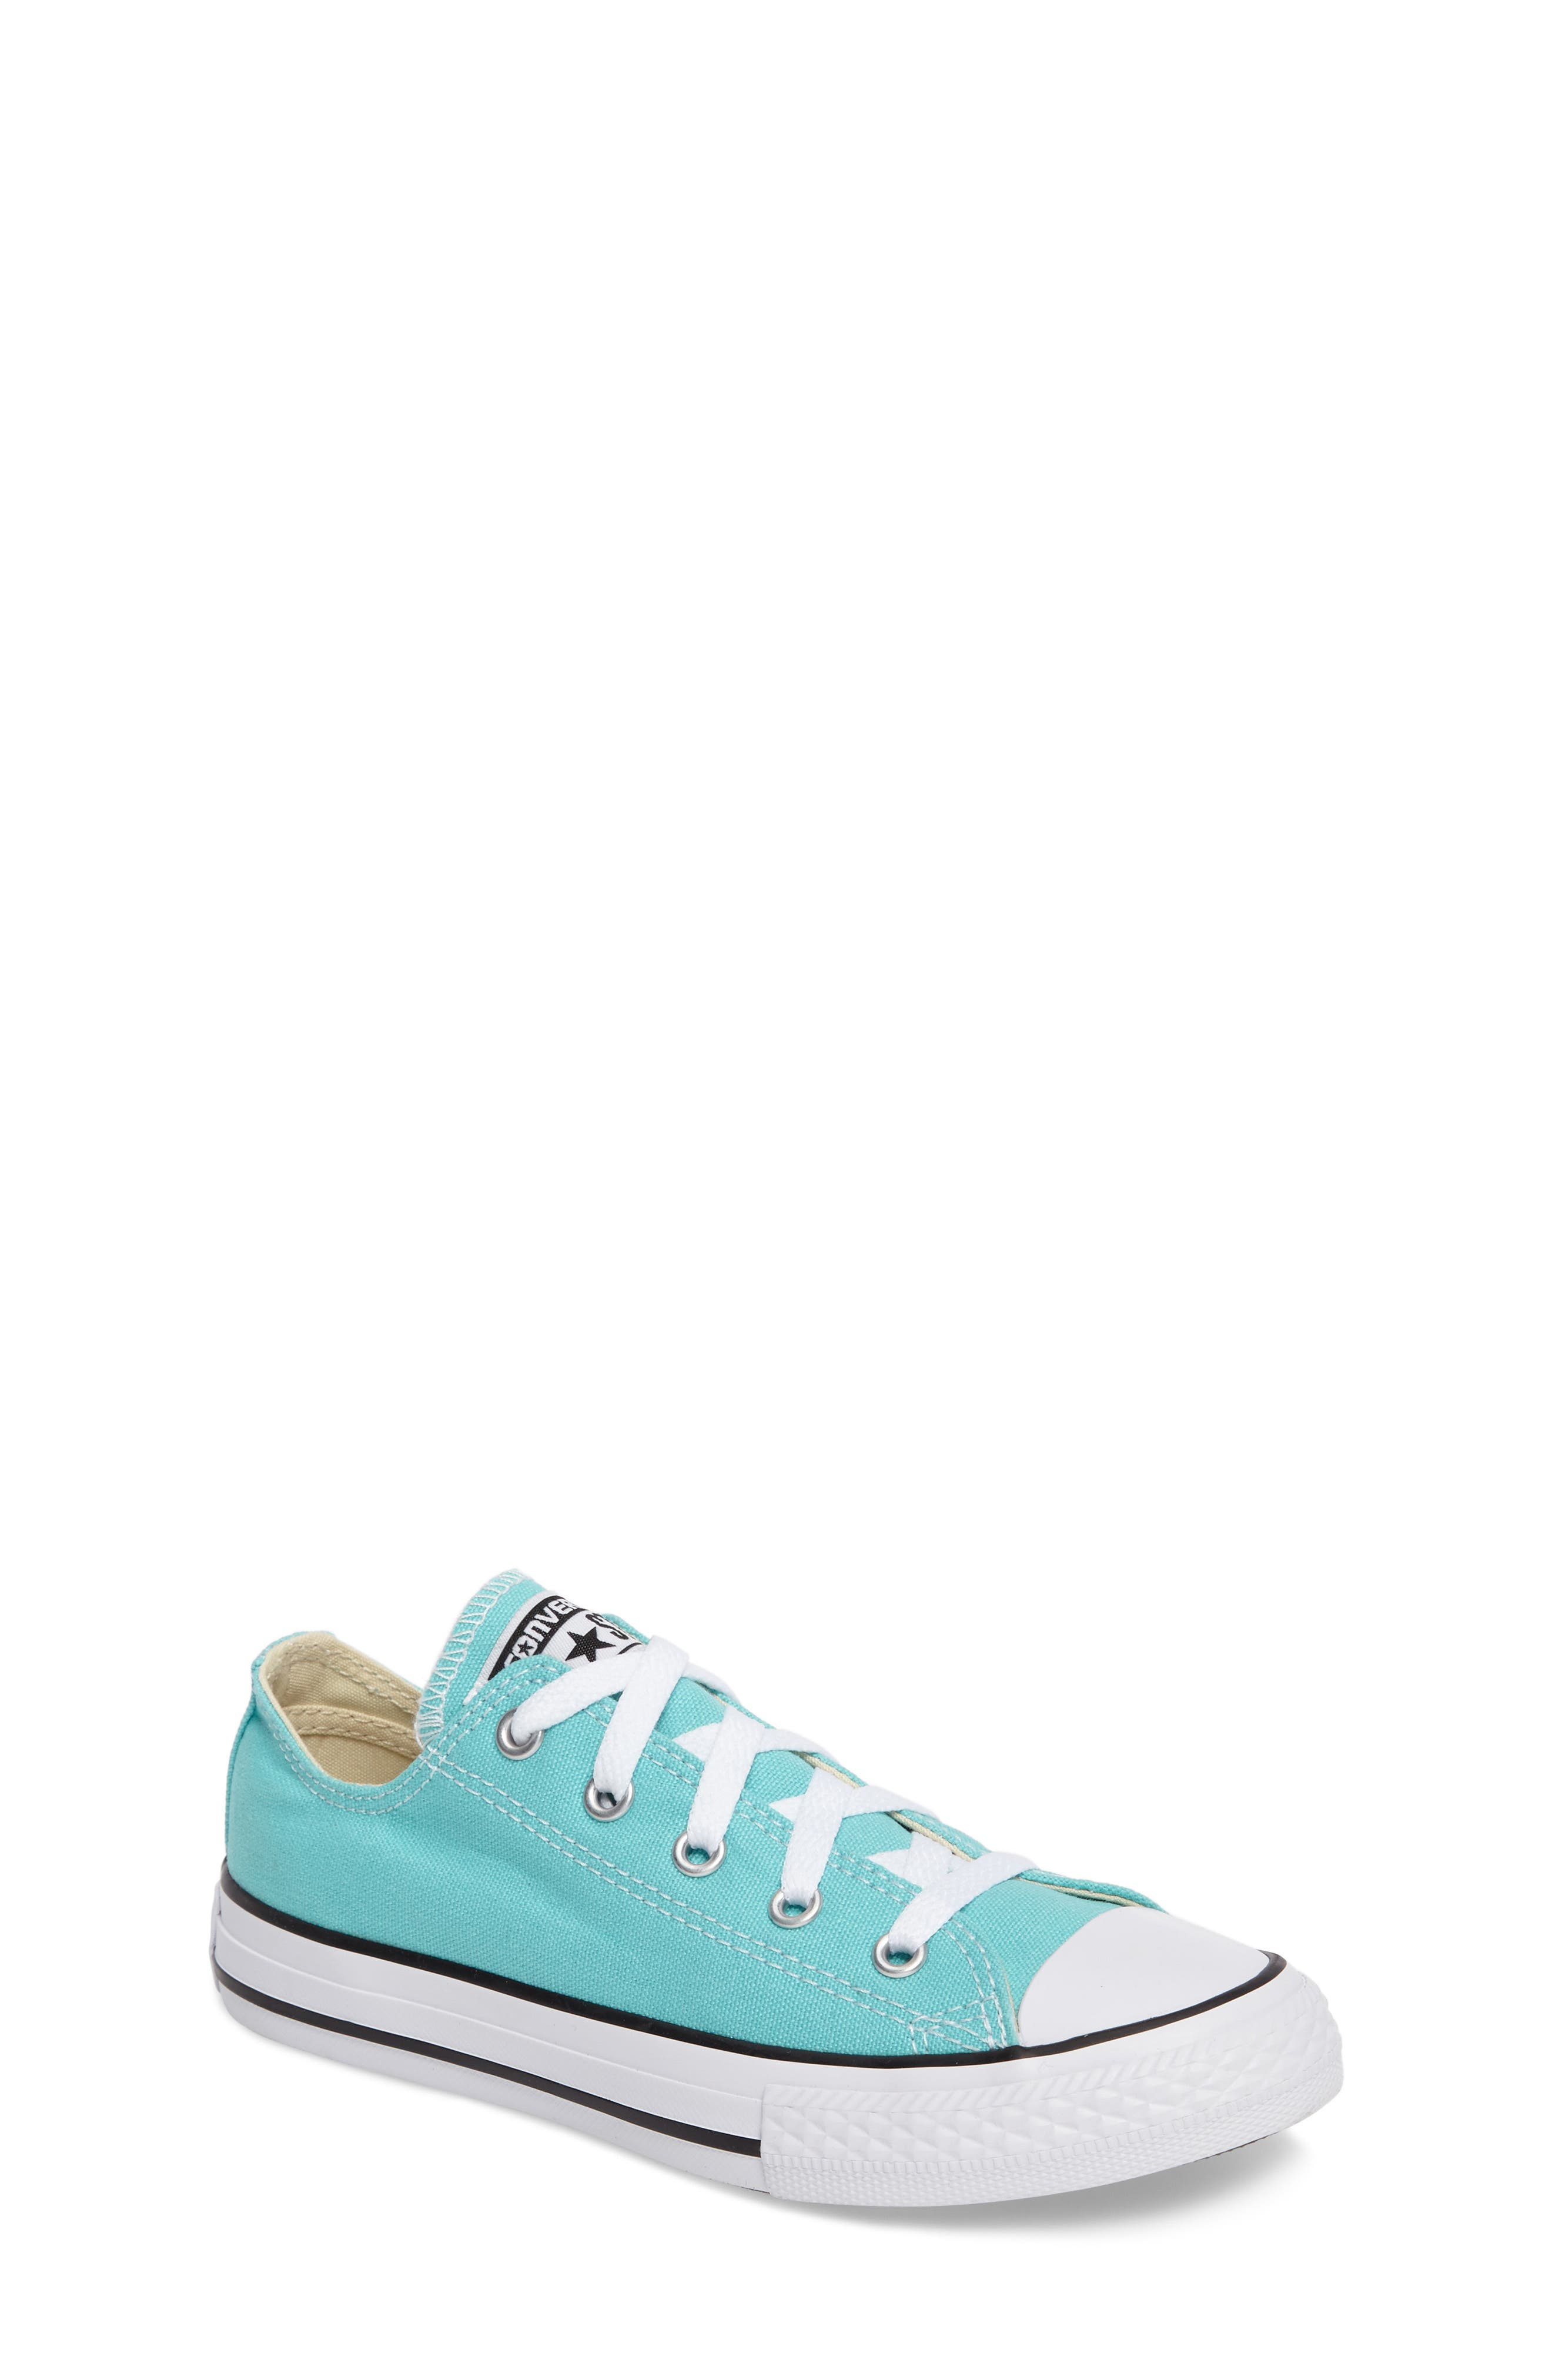 Chuck Taylor<sup>®</sup> All Star<sup>®</sup> Low Top Sneaker,                         Main,                         color, 406